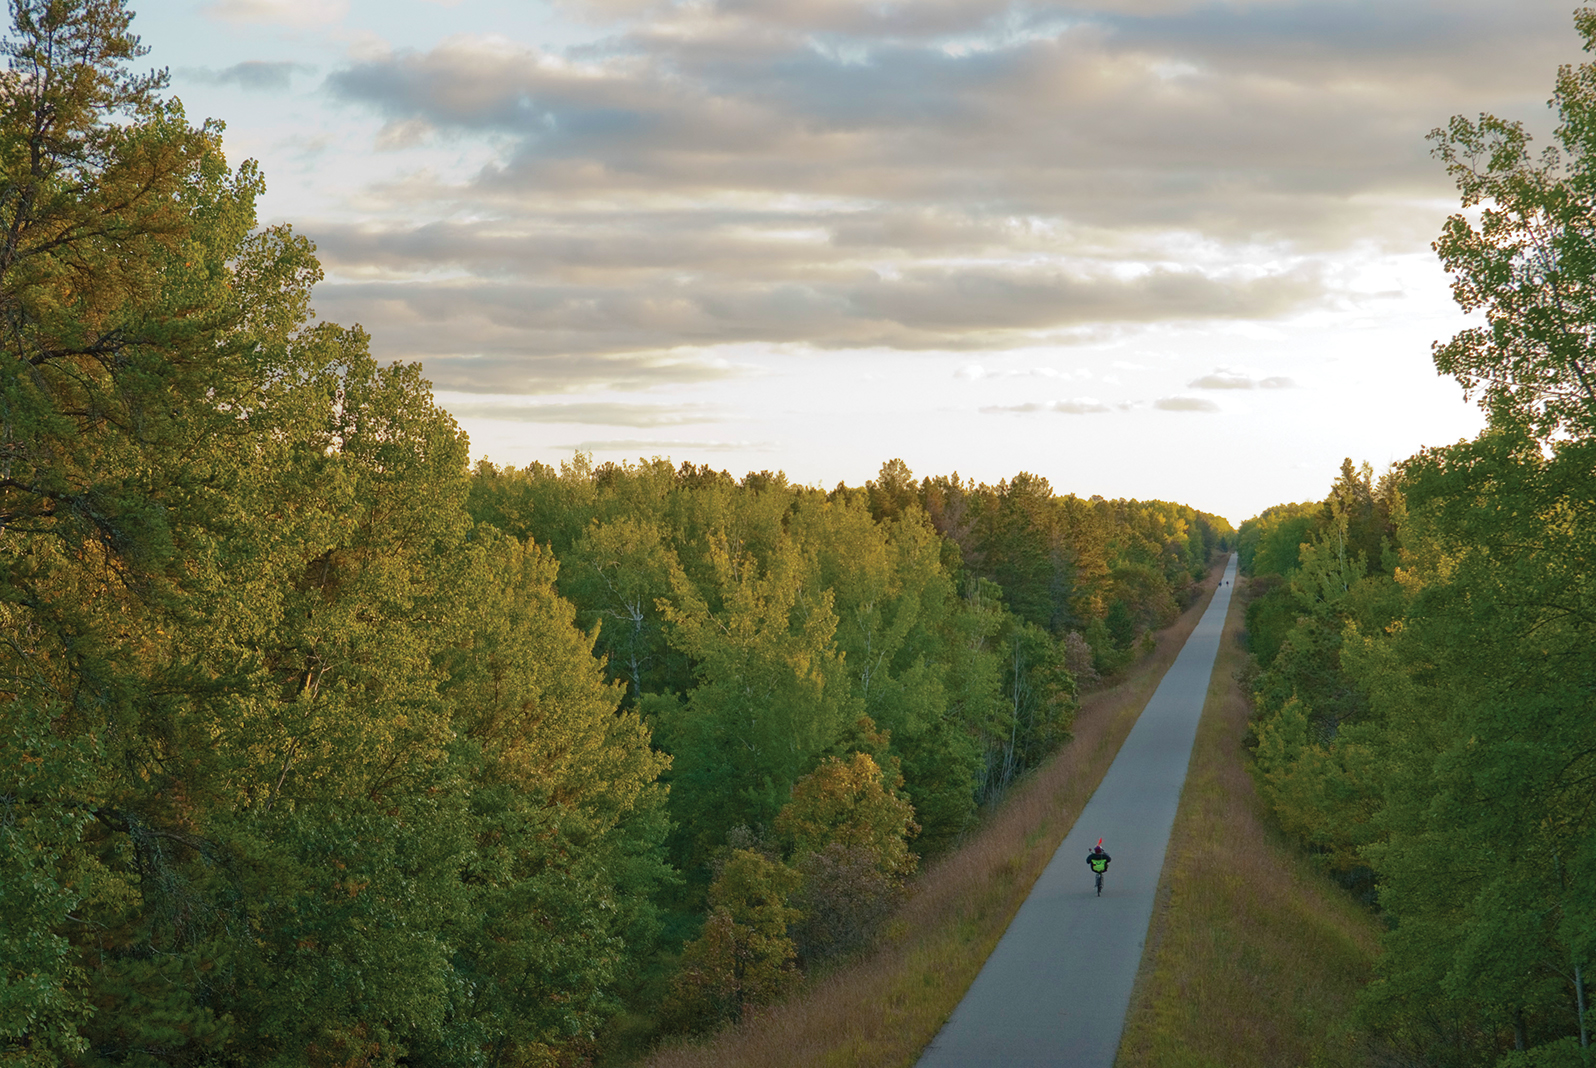 The 115-mile Paul Bunyan State Trail runs from Crow Wing State Park to Lake Bemidji State Park